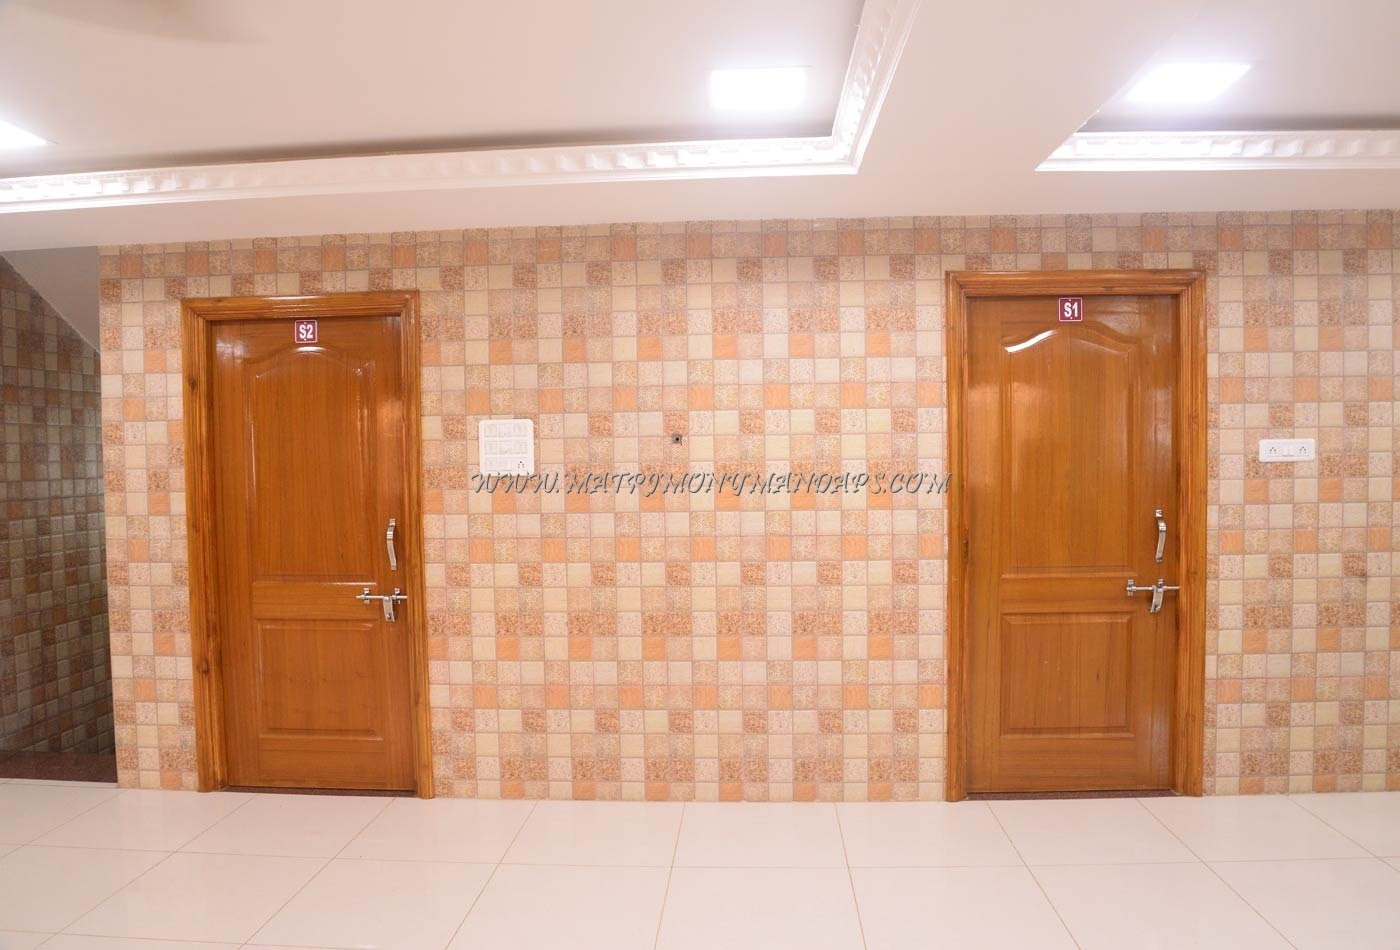 Find the availability of the Rosikha Priya Hall (A/C) in Virugambakkam, Chennai and avail special offers